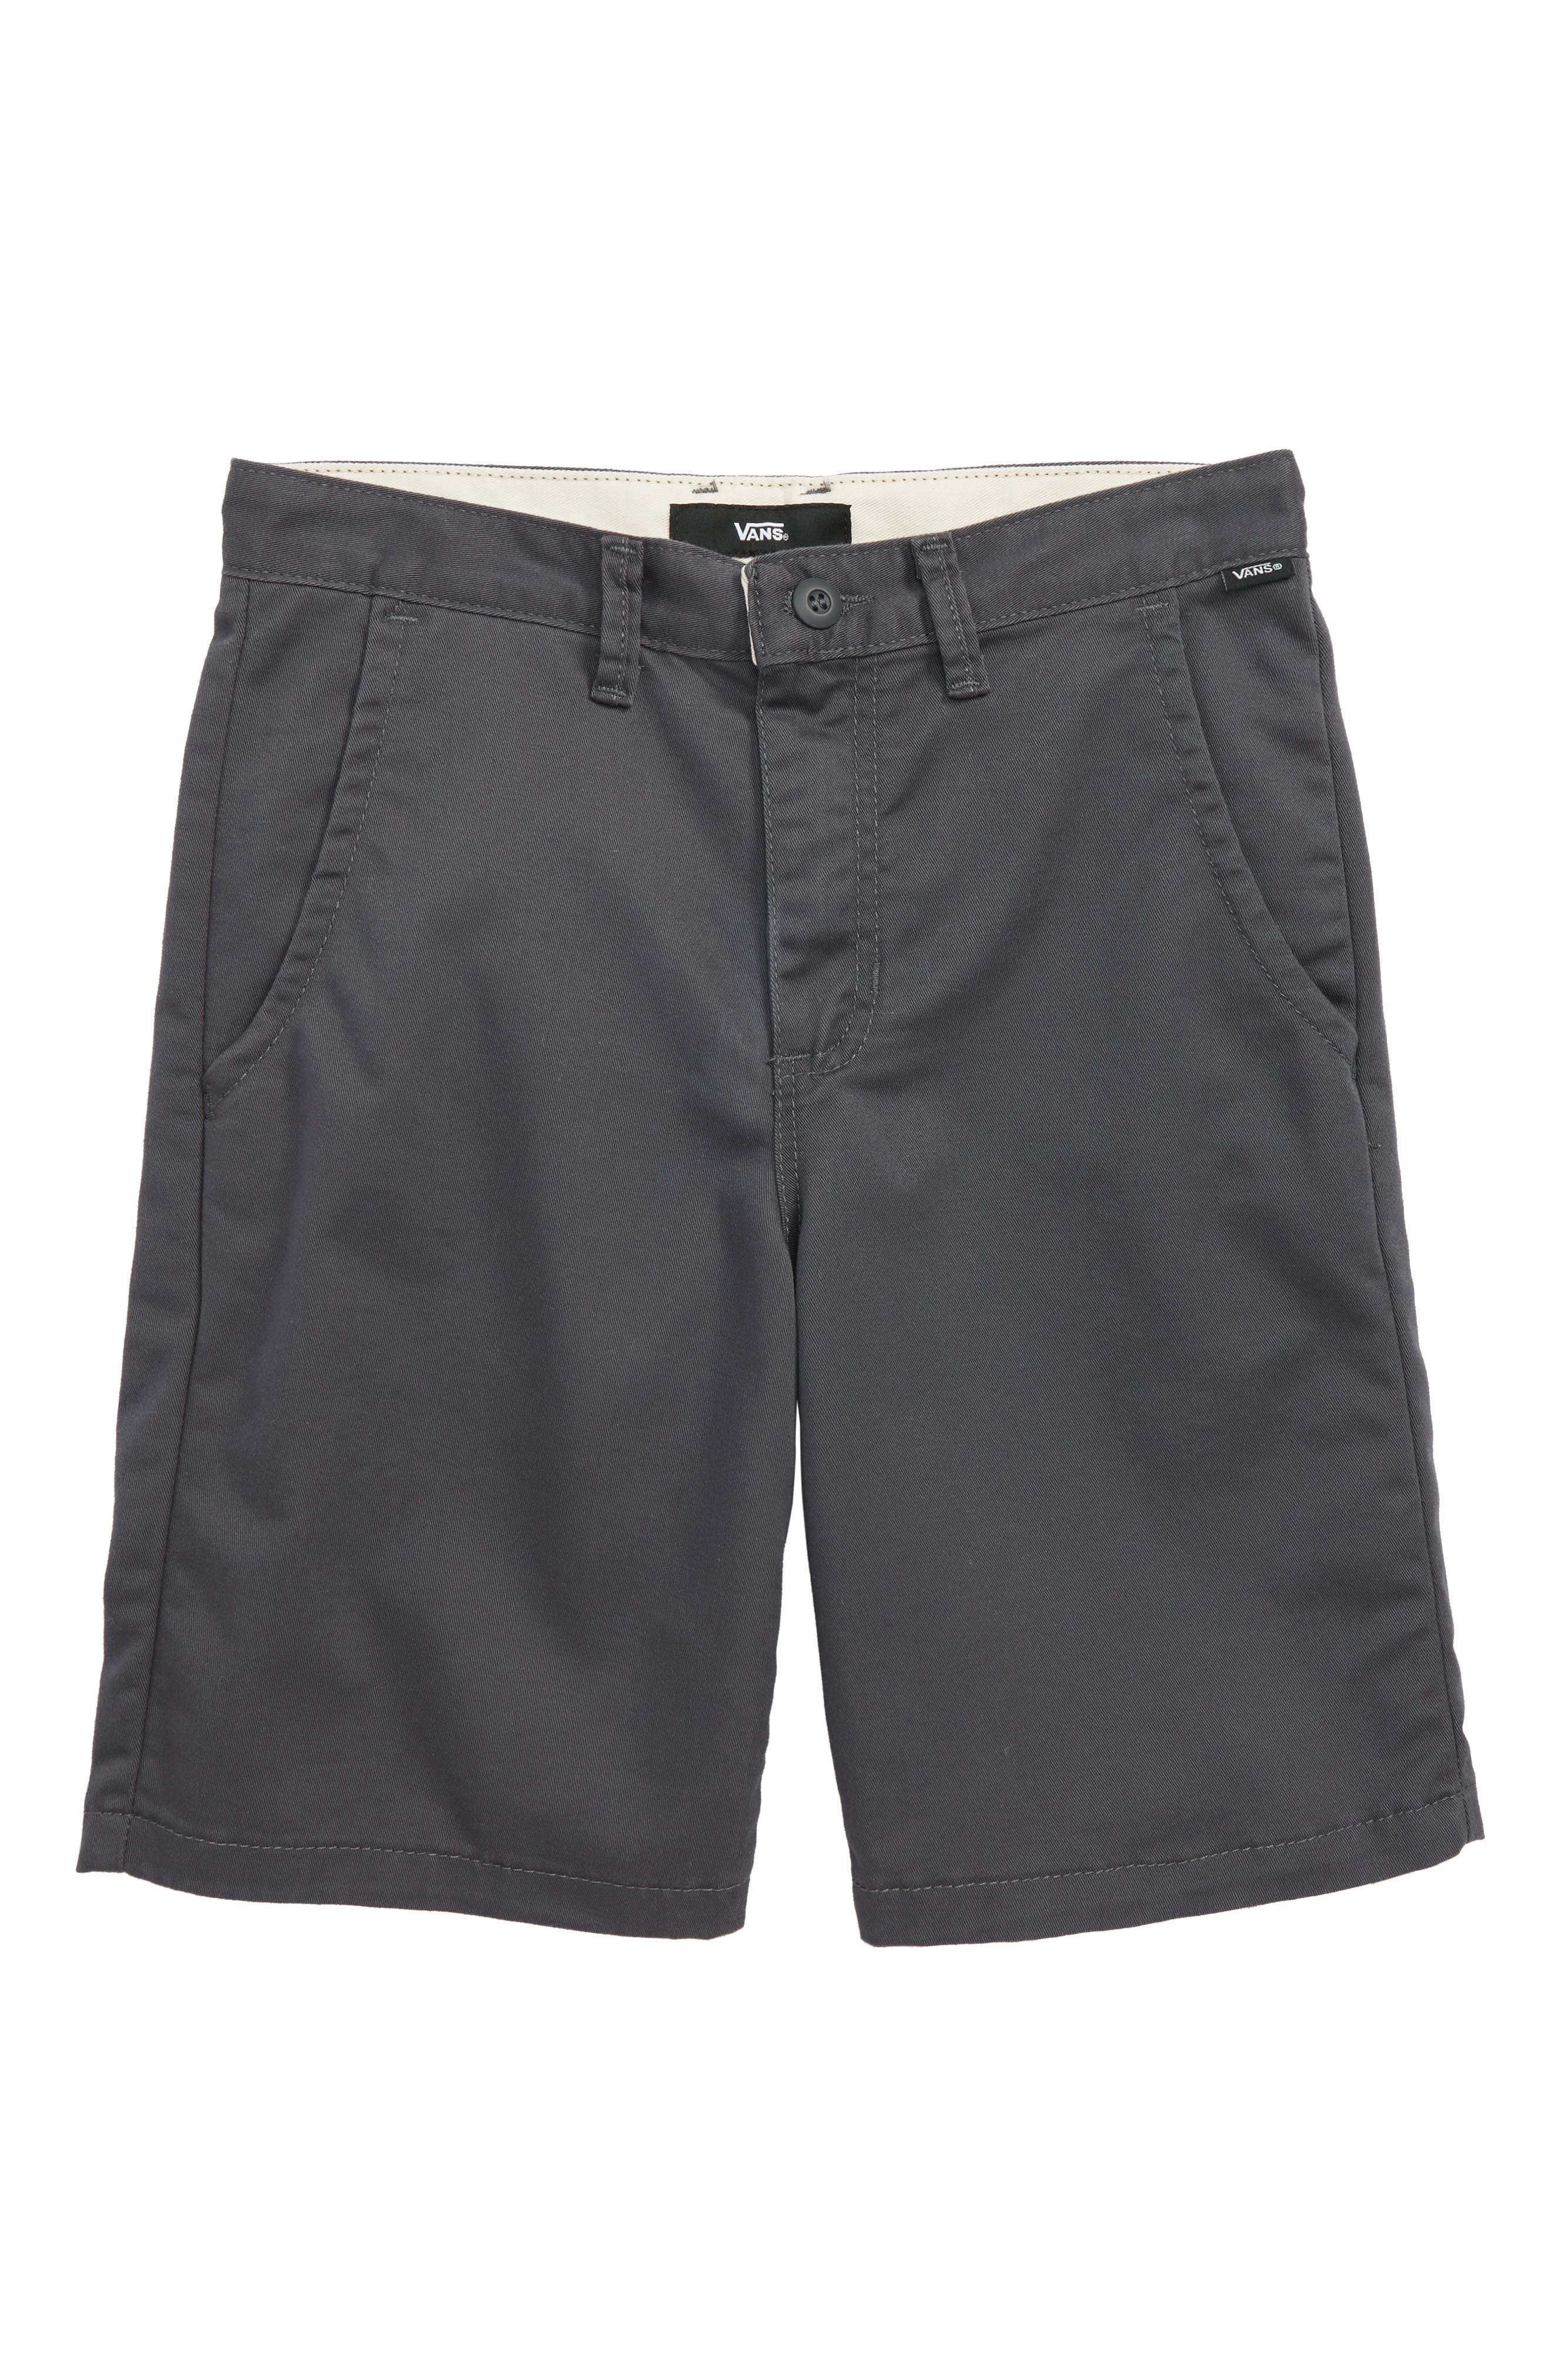 Alternate Image 1 Selected - Vans Authentic Walk Shorts (Big Boys)